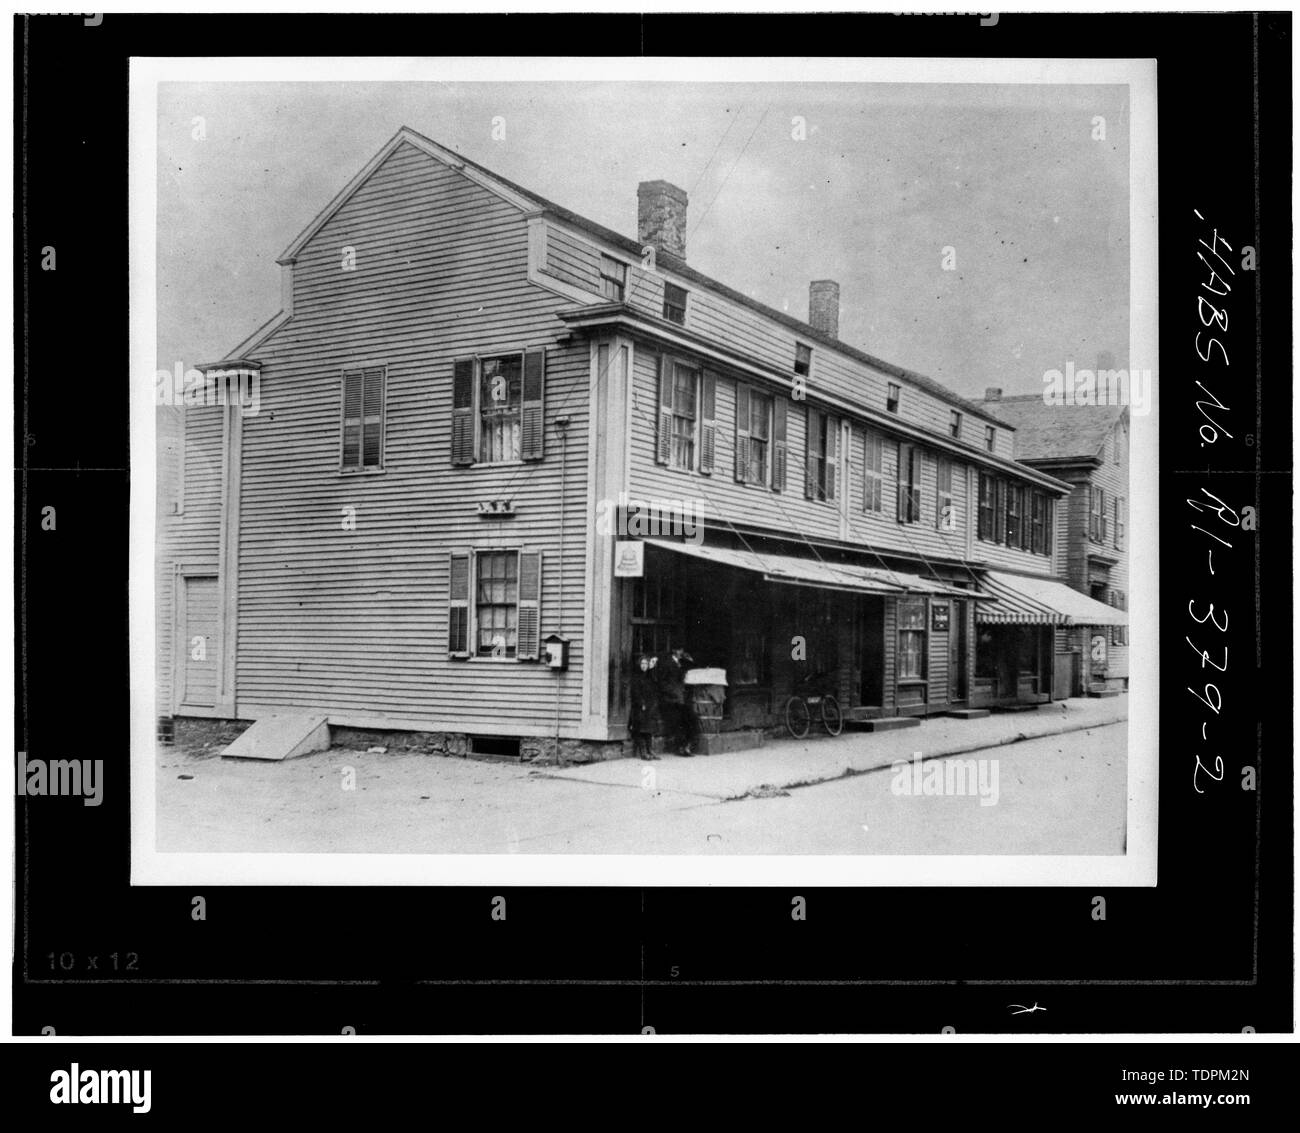 Photocopy of unattributed circa 1910 photograph, source not noted. VIEW FROM THE SOUTHEAST CIRCA 1910 - Hazard Block, 405-411 Thames Street, Newport, Newport County, RI - Stock Image